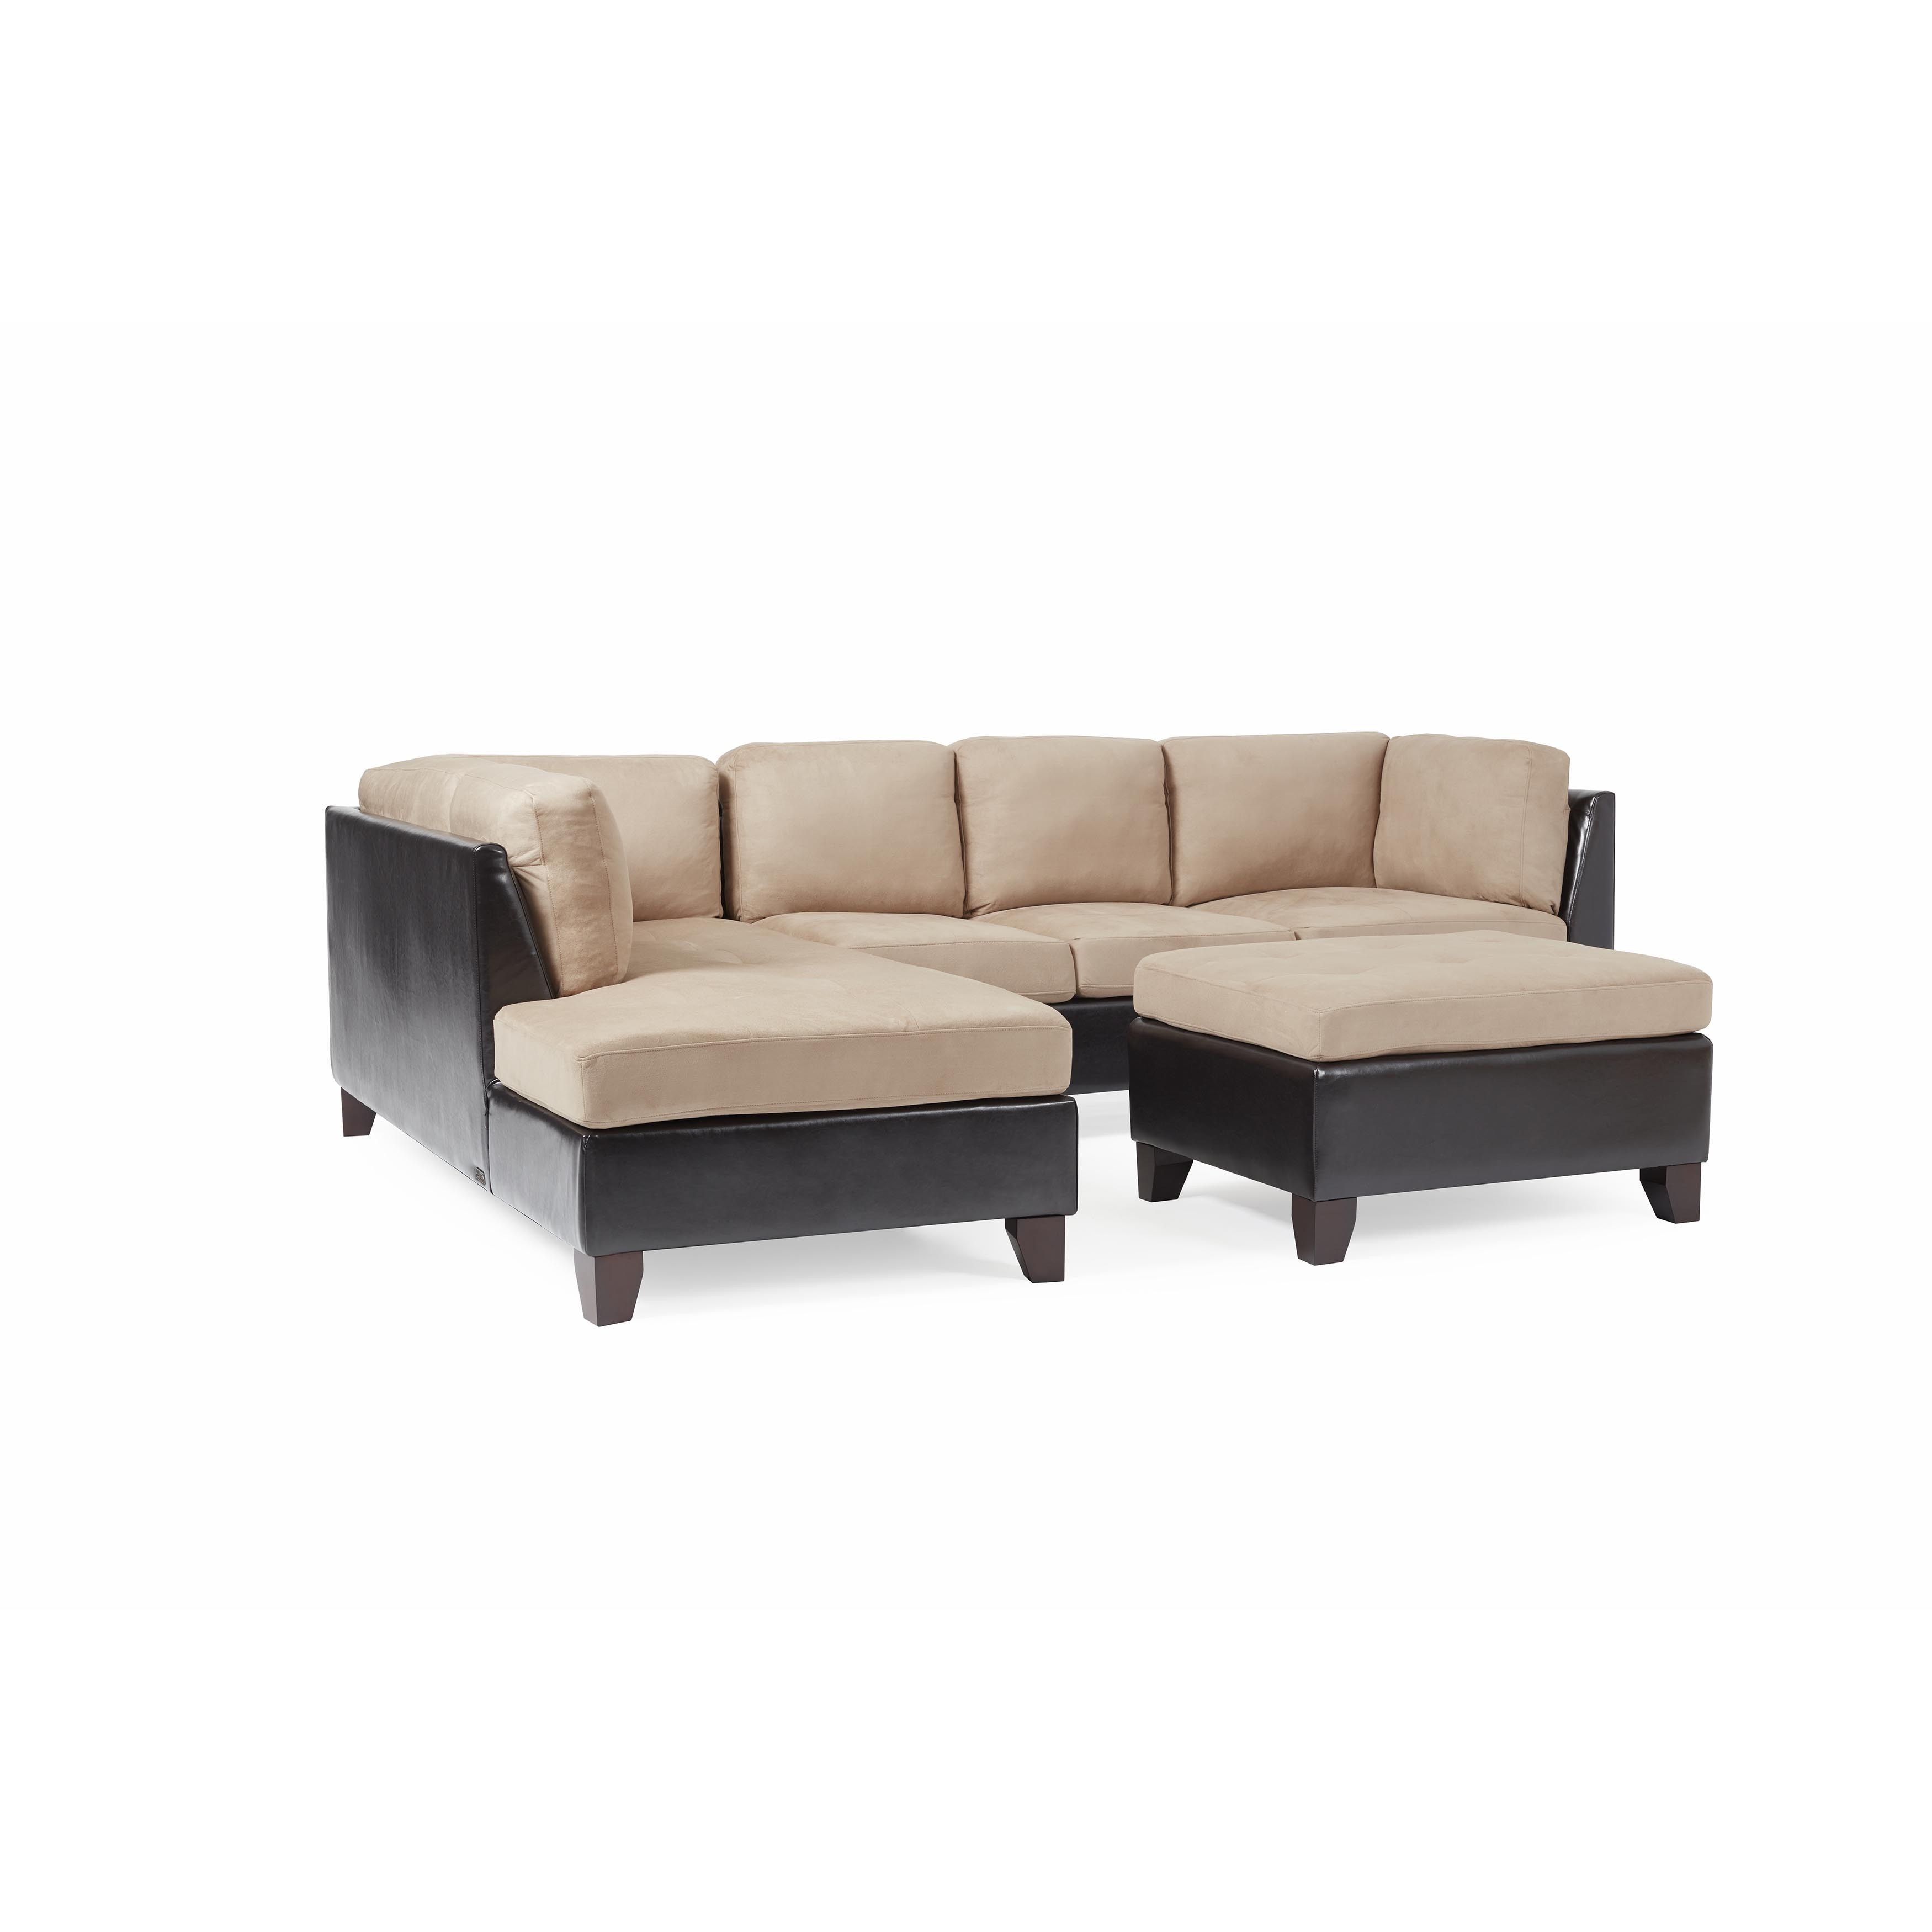 Shop Abbyson Charlotte Beige Sectional Sofa And Ottoman   On Sale   Free  Shipping Today   Overstock.com   4697404